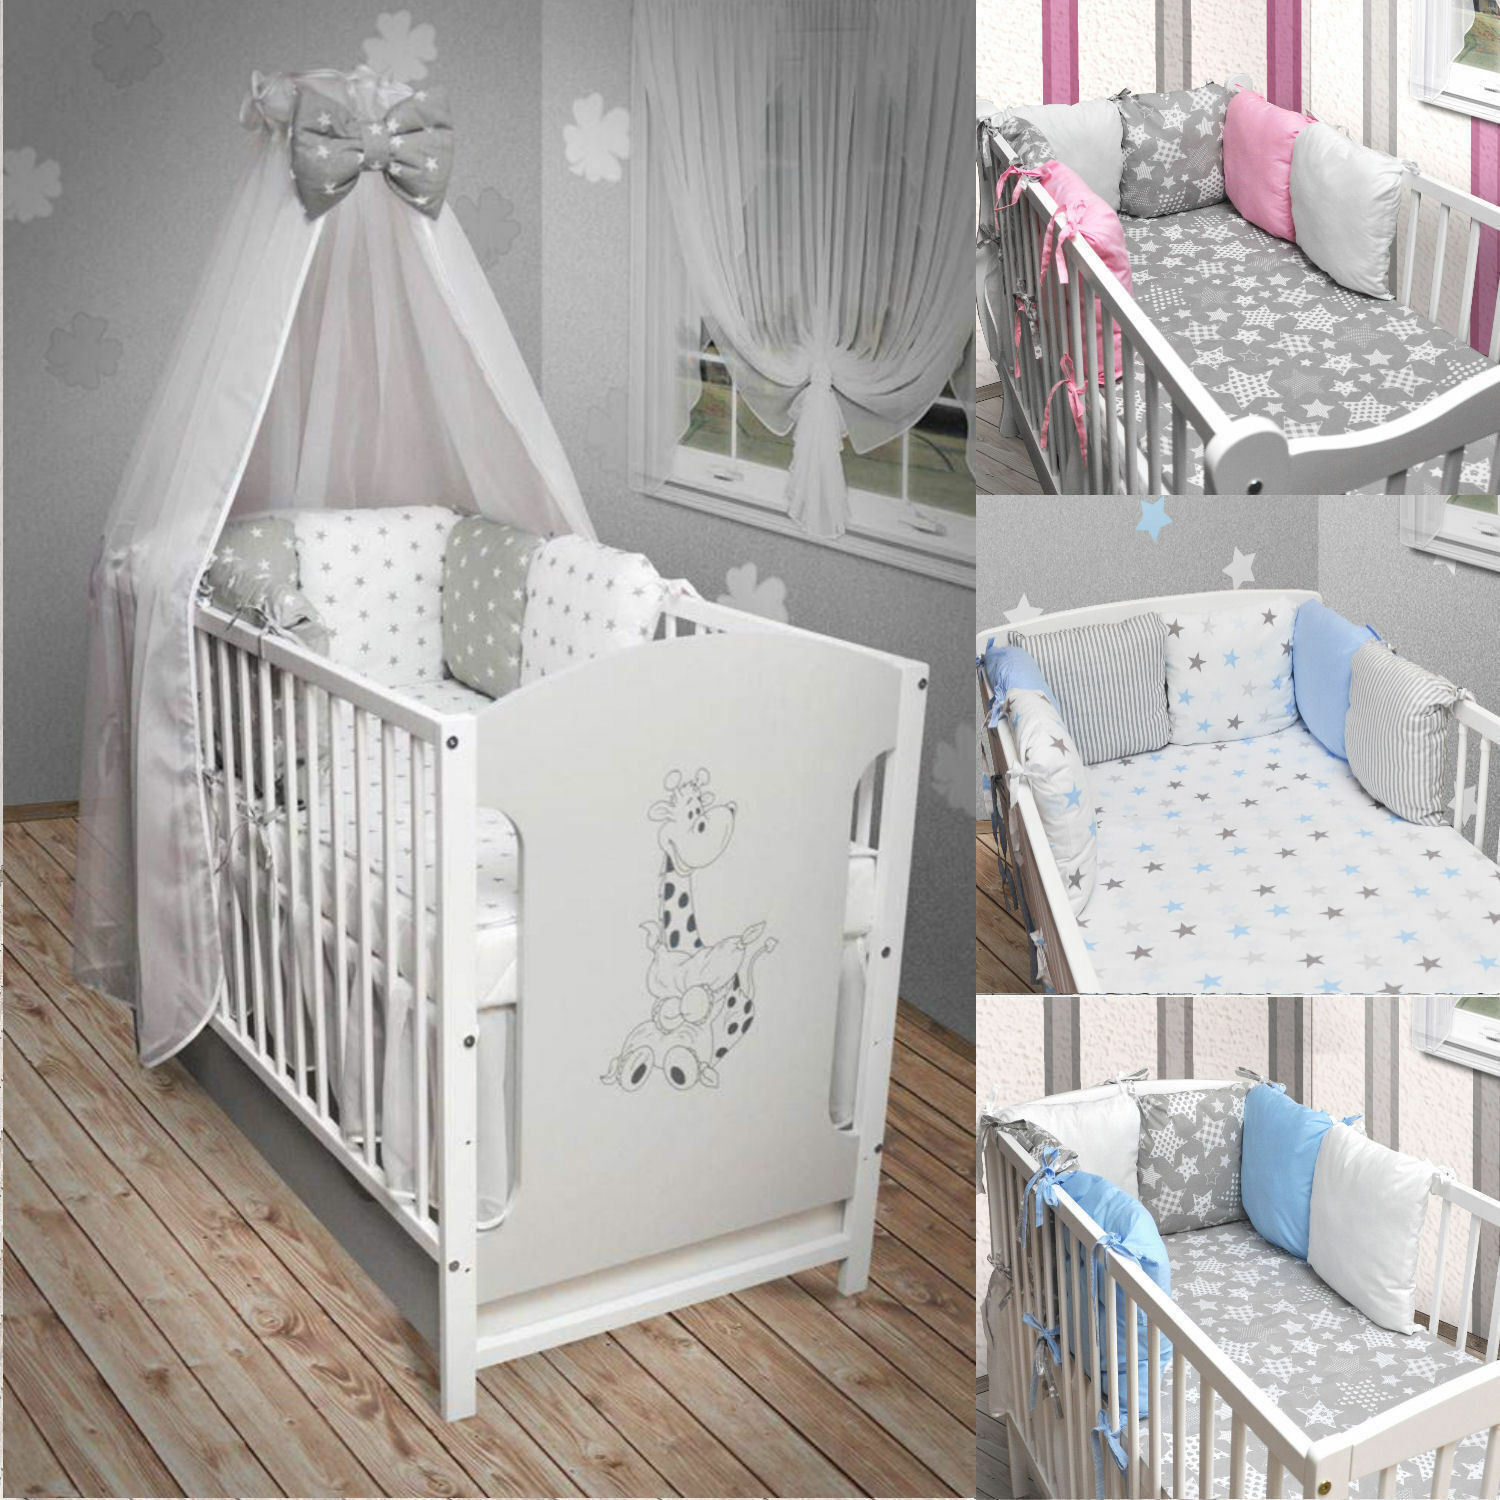 babybett kinderbett wei grau bettset neu matratze schublade 120x60 giraffe eur 173 85. Black Bedroom Furniture Sets. Home Design Ideas